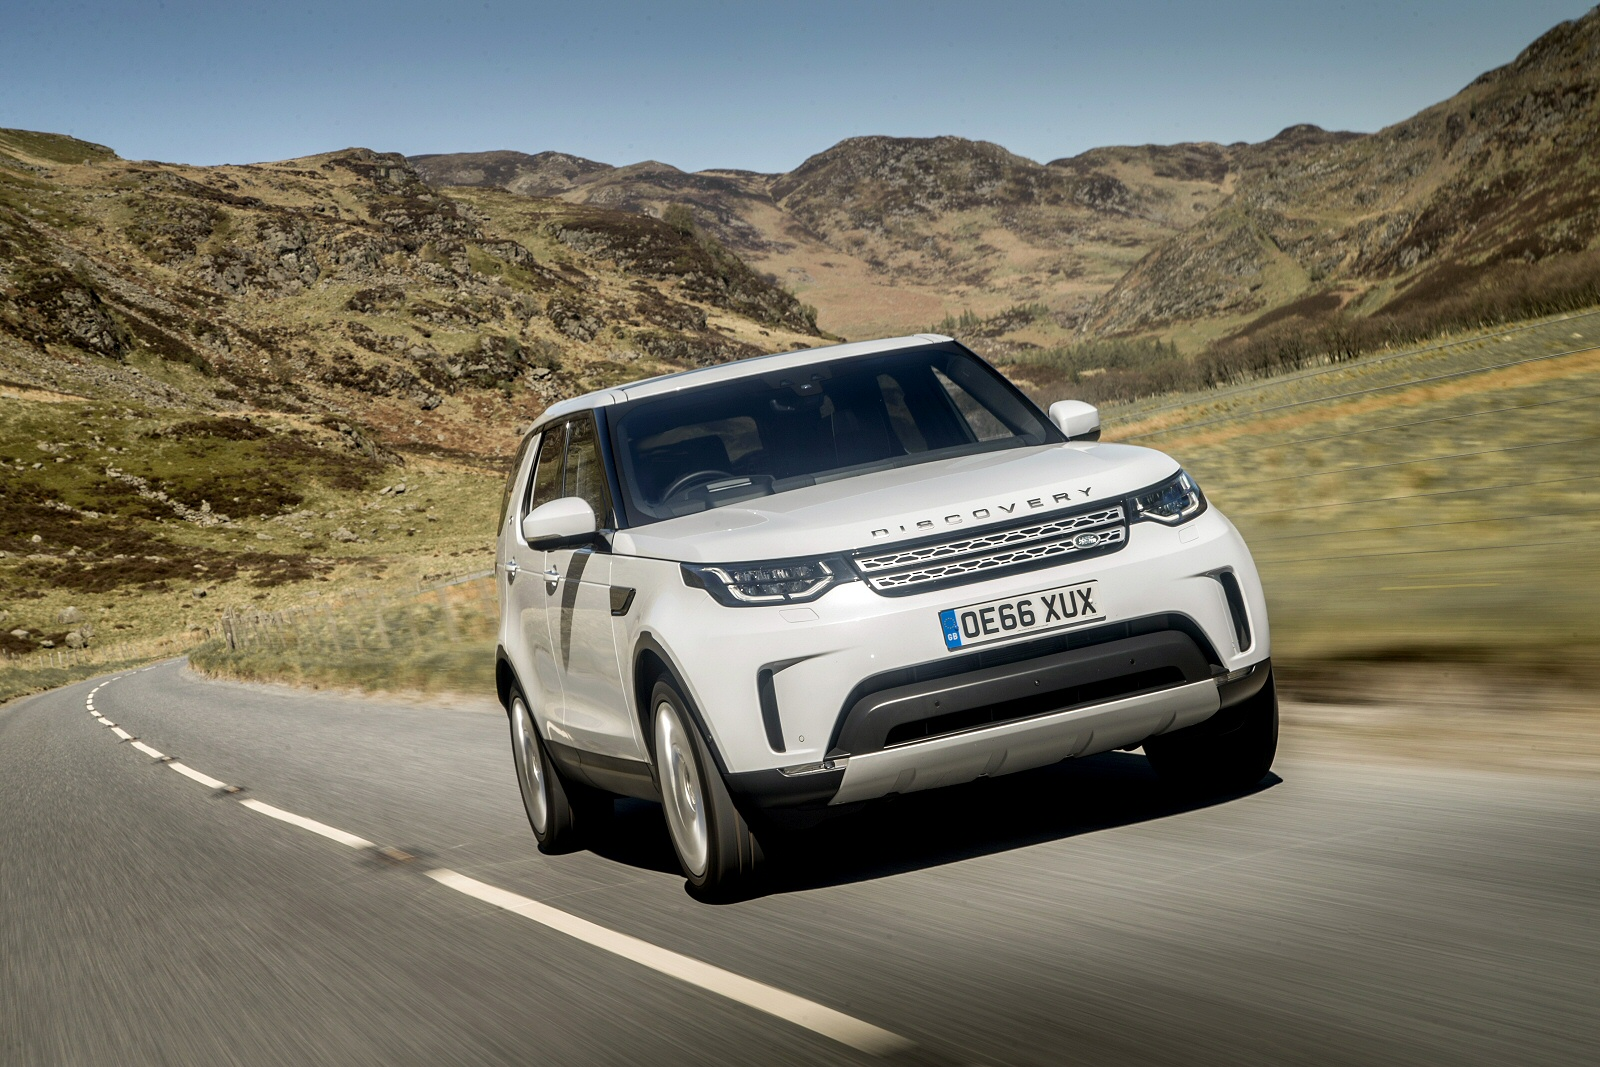 new land rover discovery sport 2 0 td4 hse 5dr 5 seat diesel station wagon for sale farnell. Black Bedroom Furniture Sets. Home Design Ideas